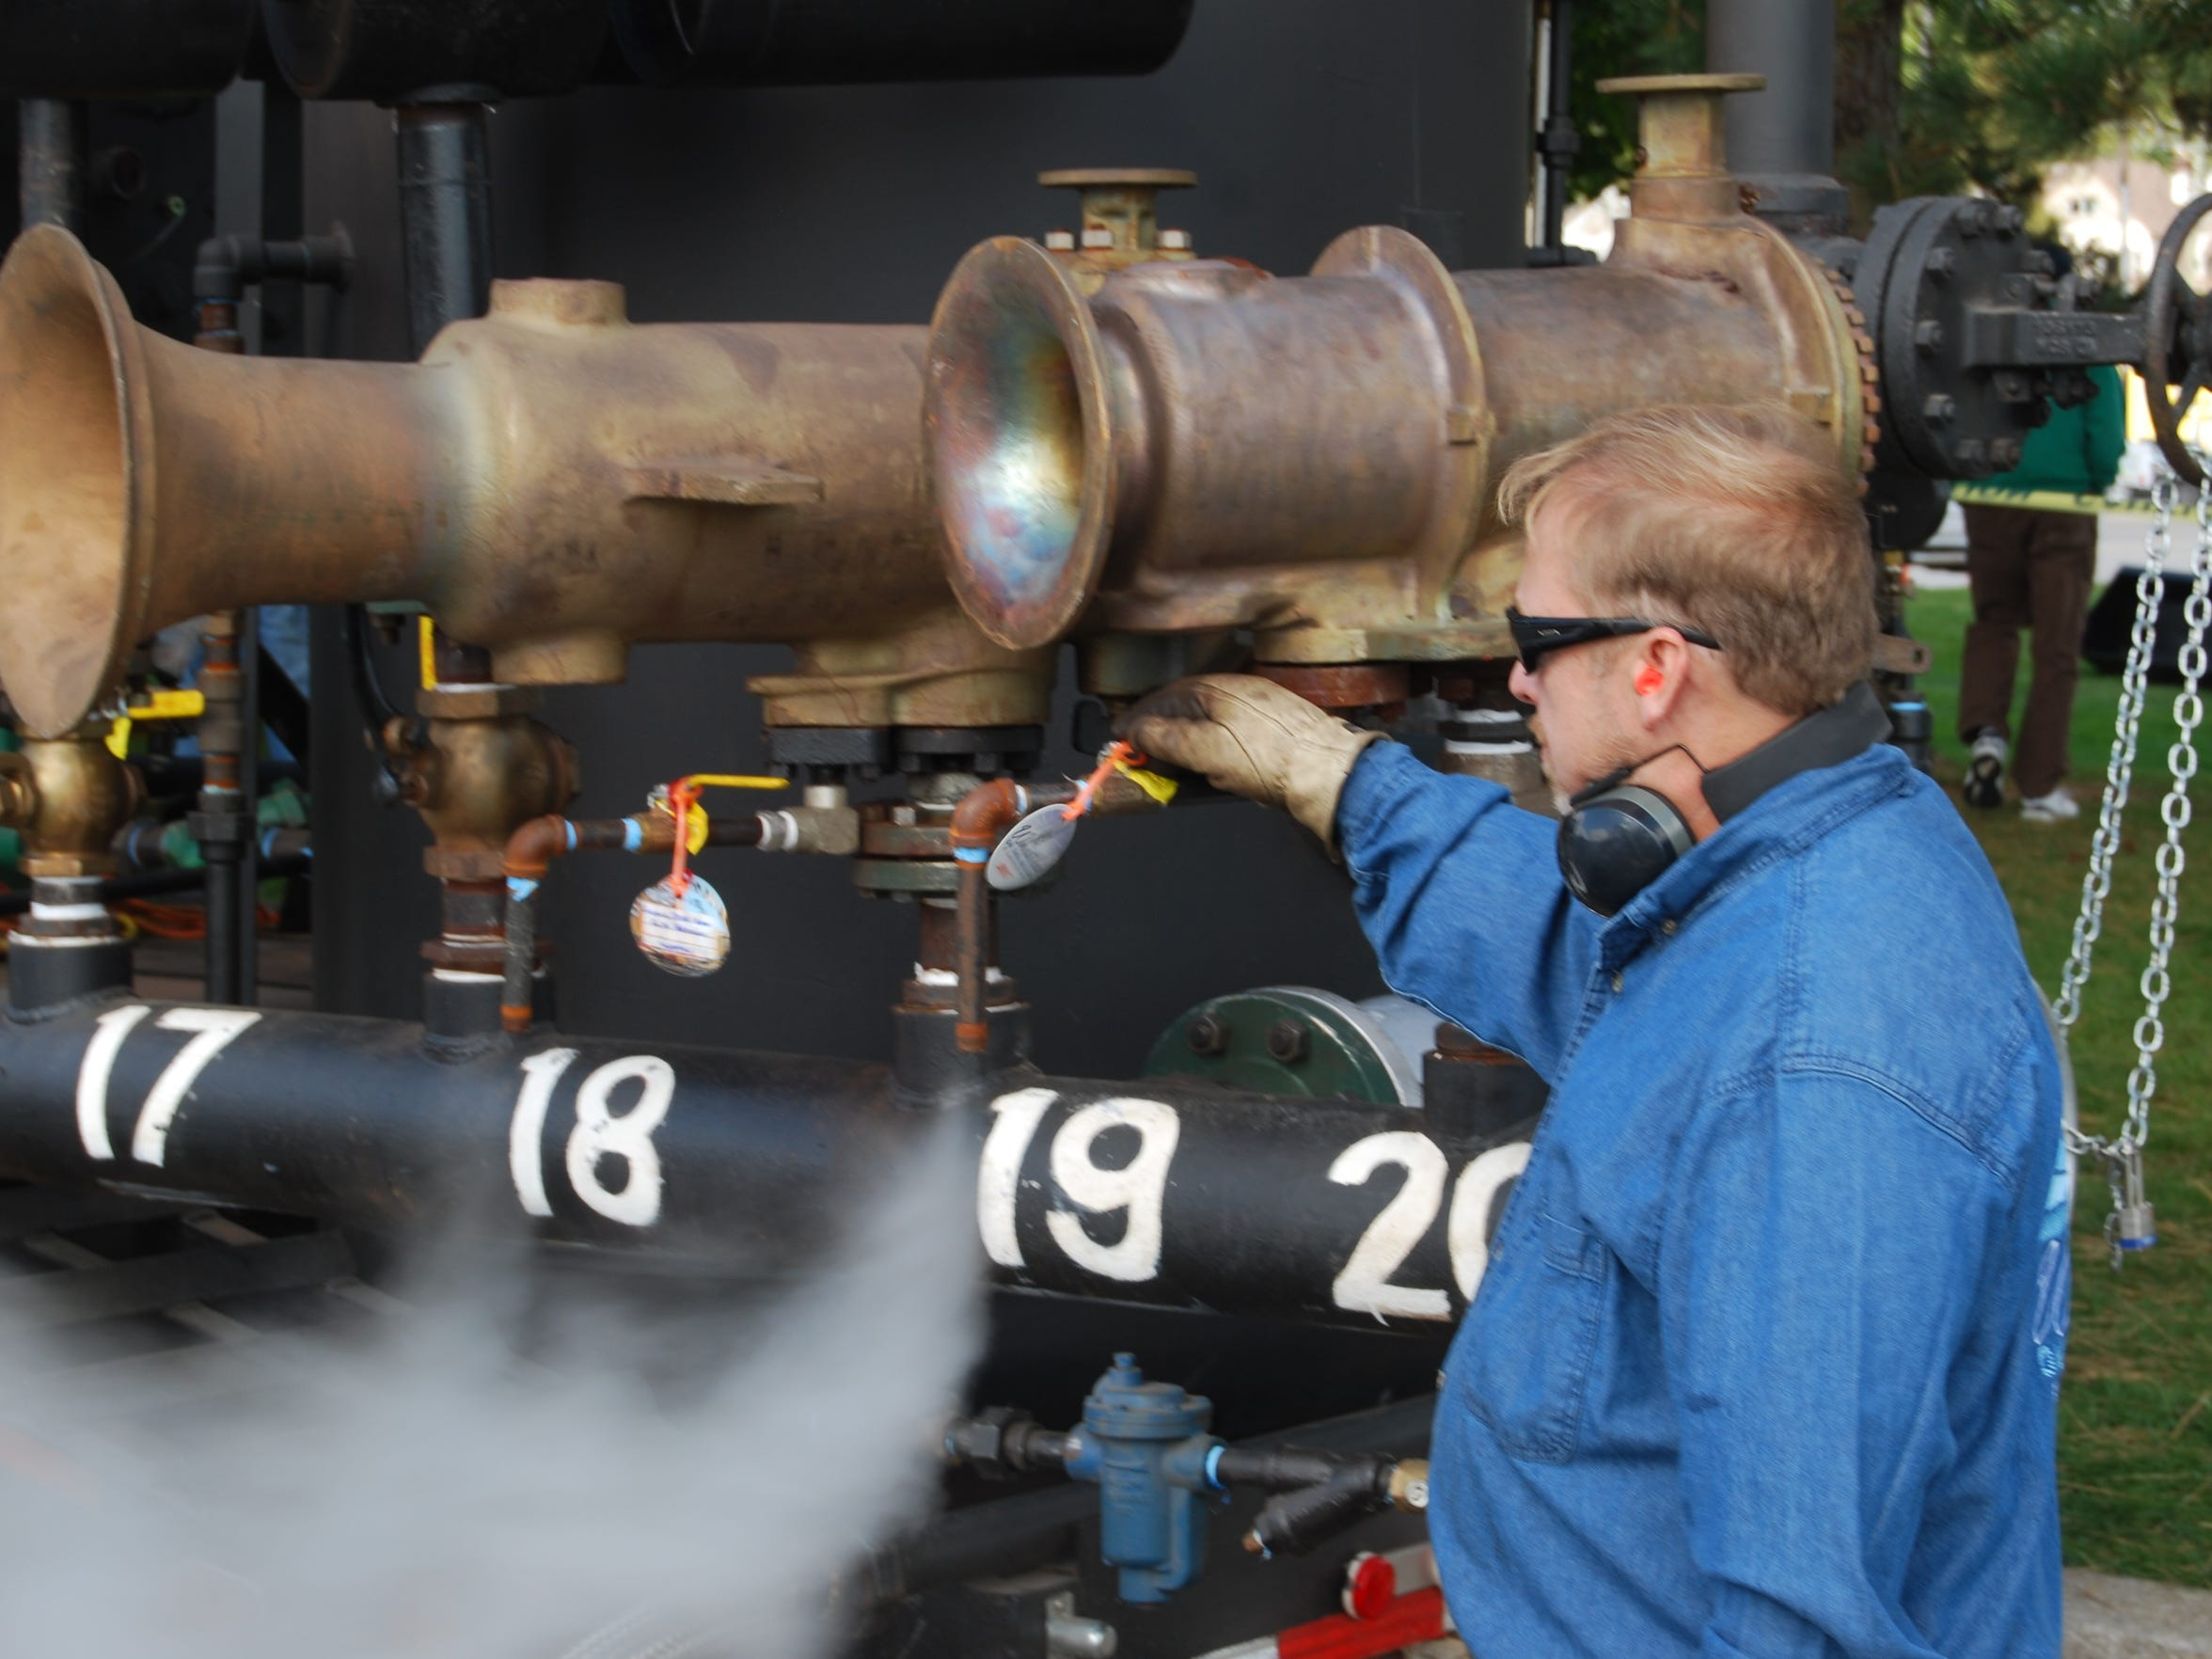 Bruce Rooen lets off some steam from a large boiler